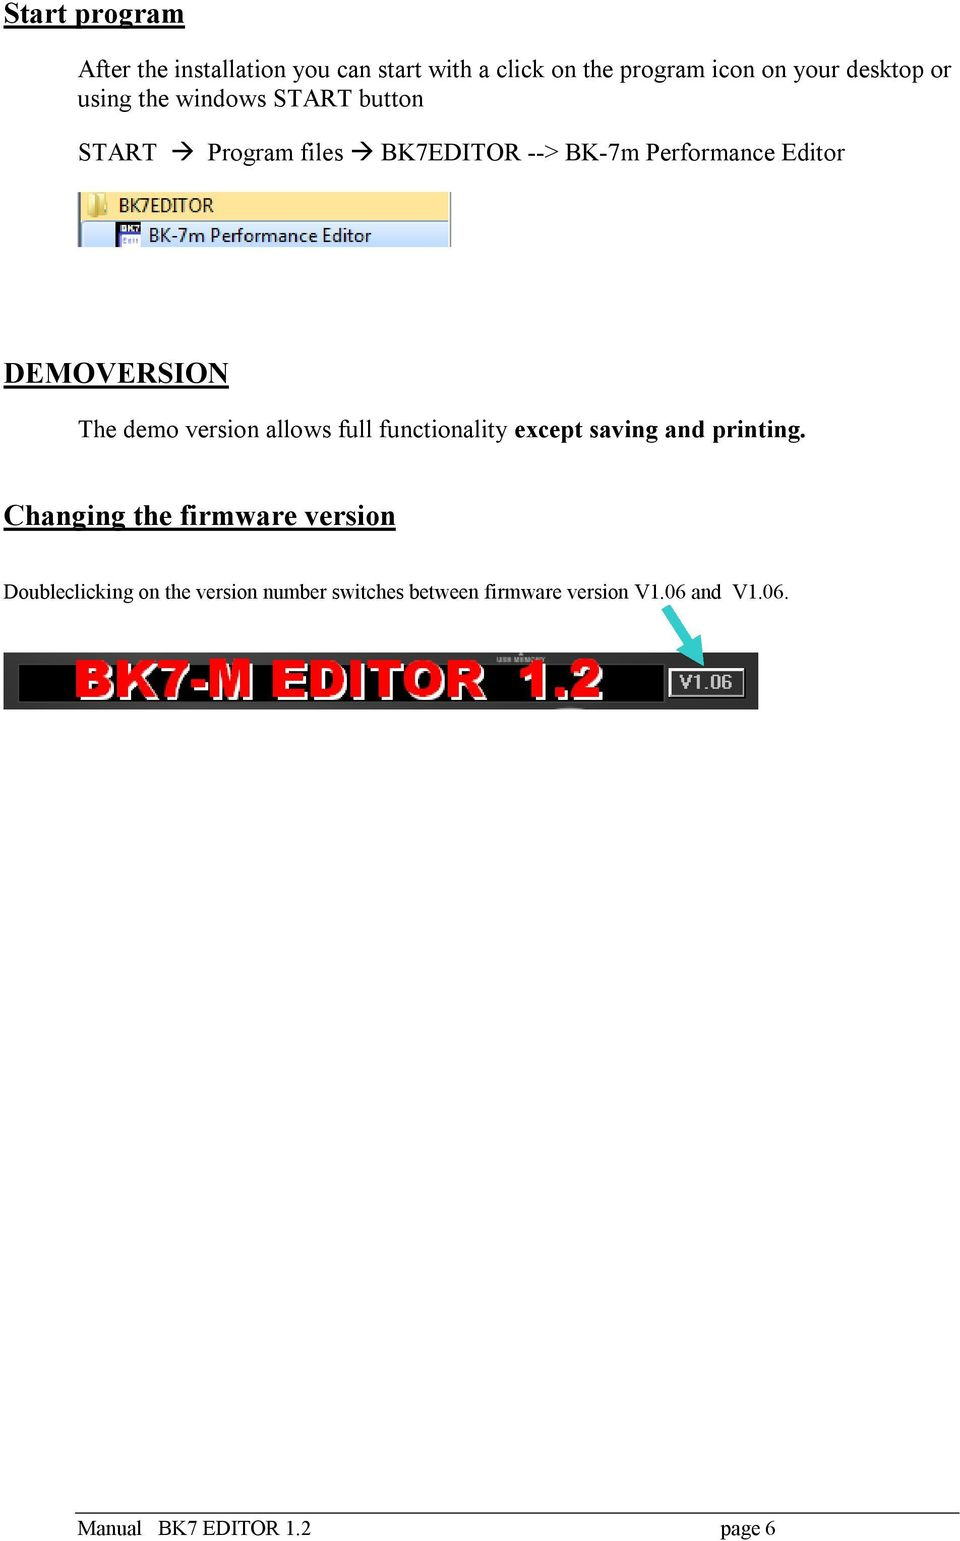 Manual BK7 - EDITOR  BK-7m is a registered trademark by